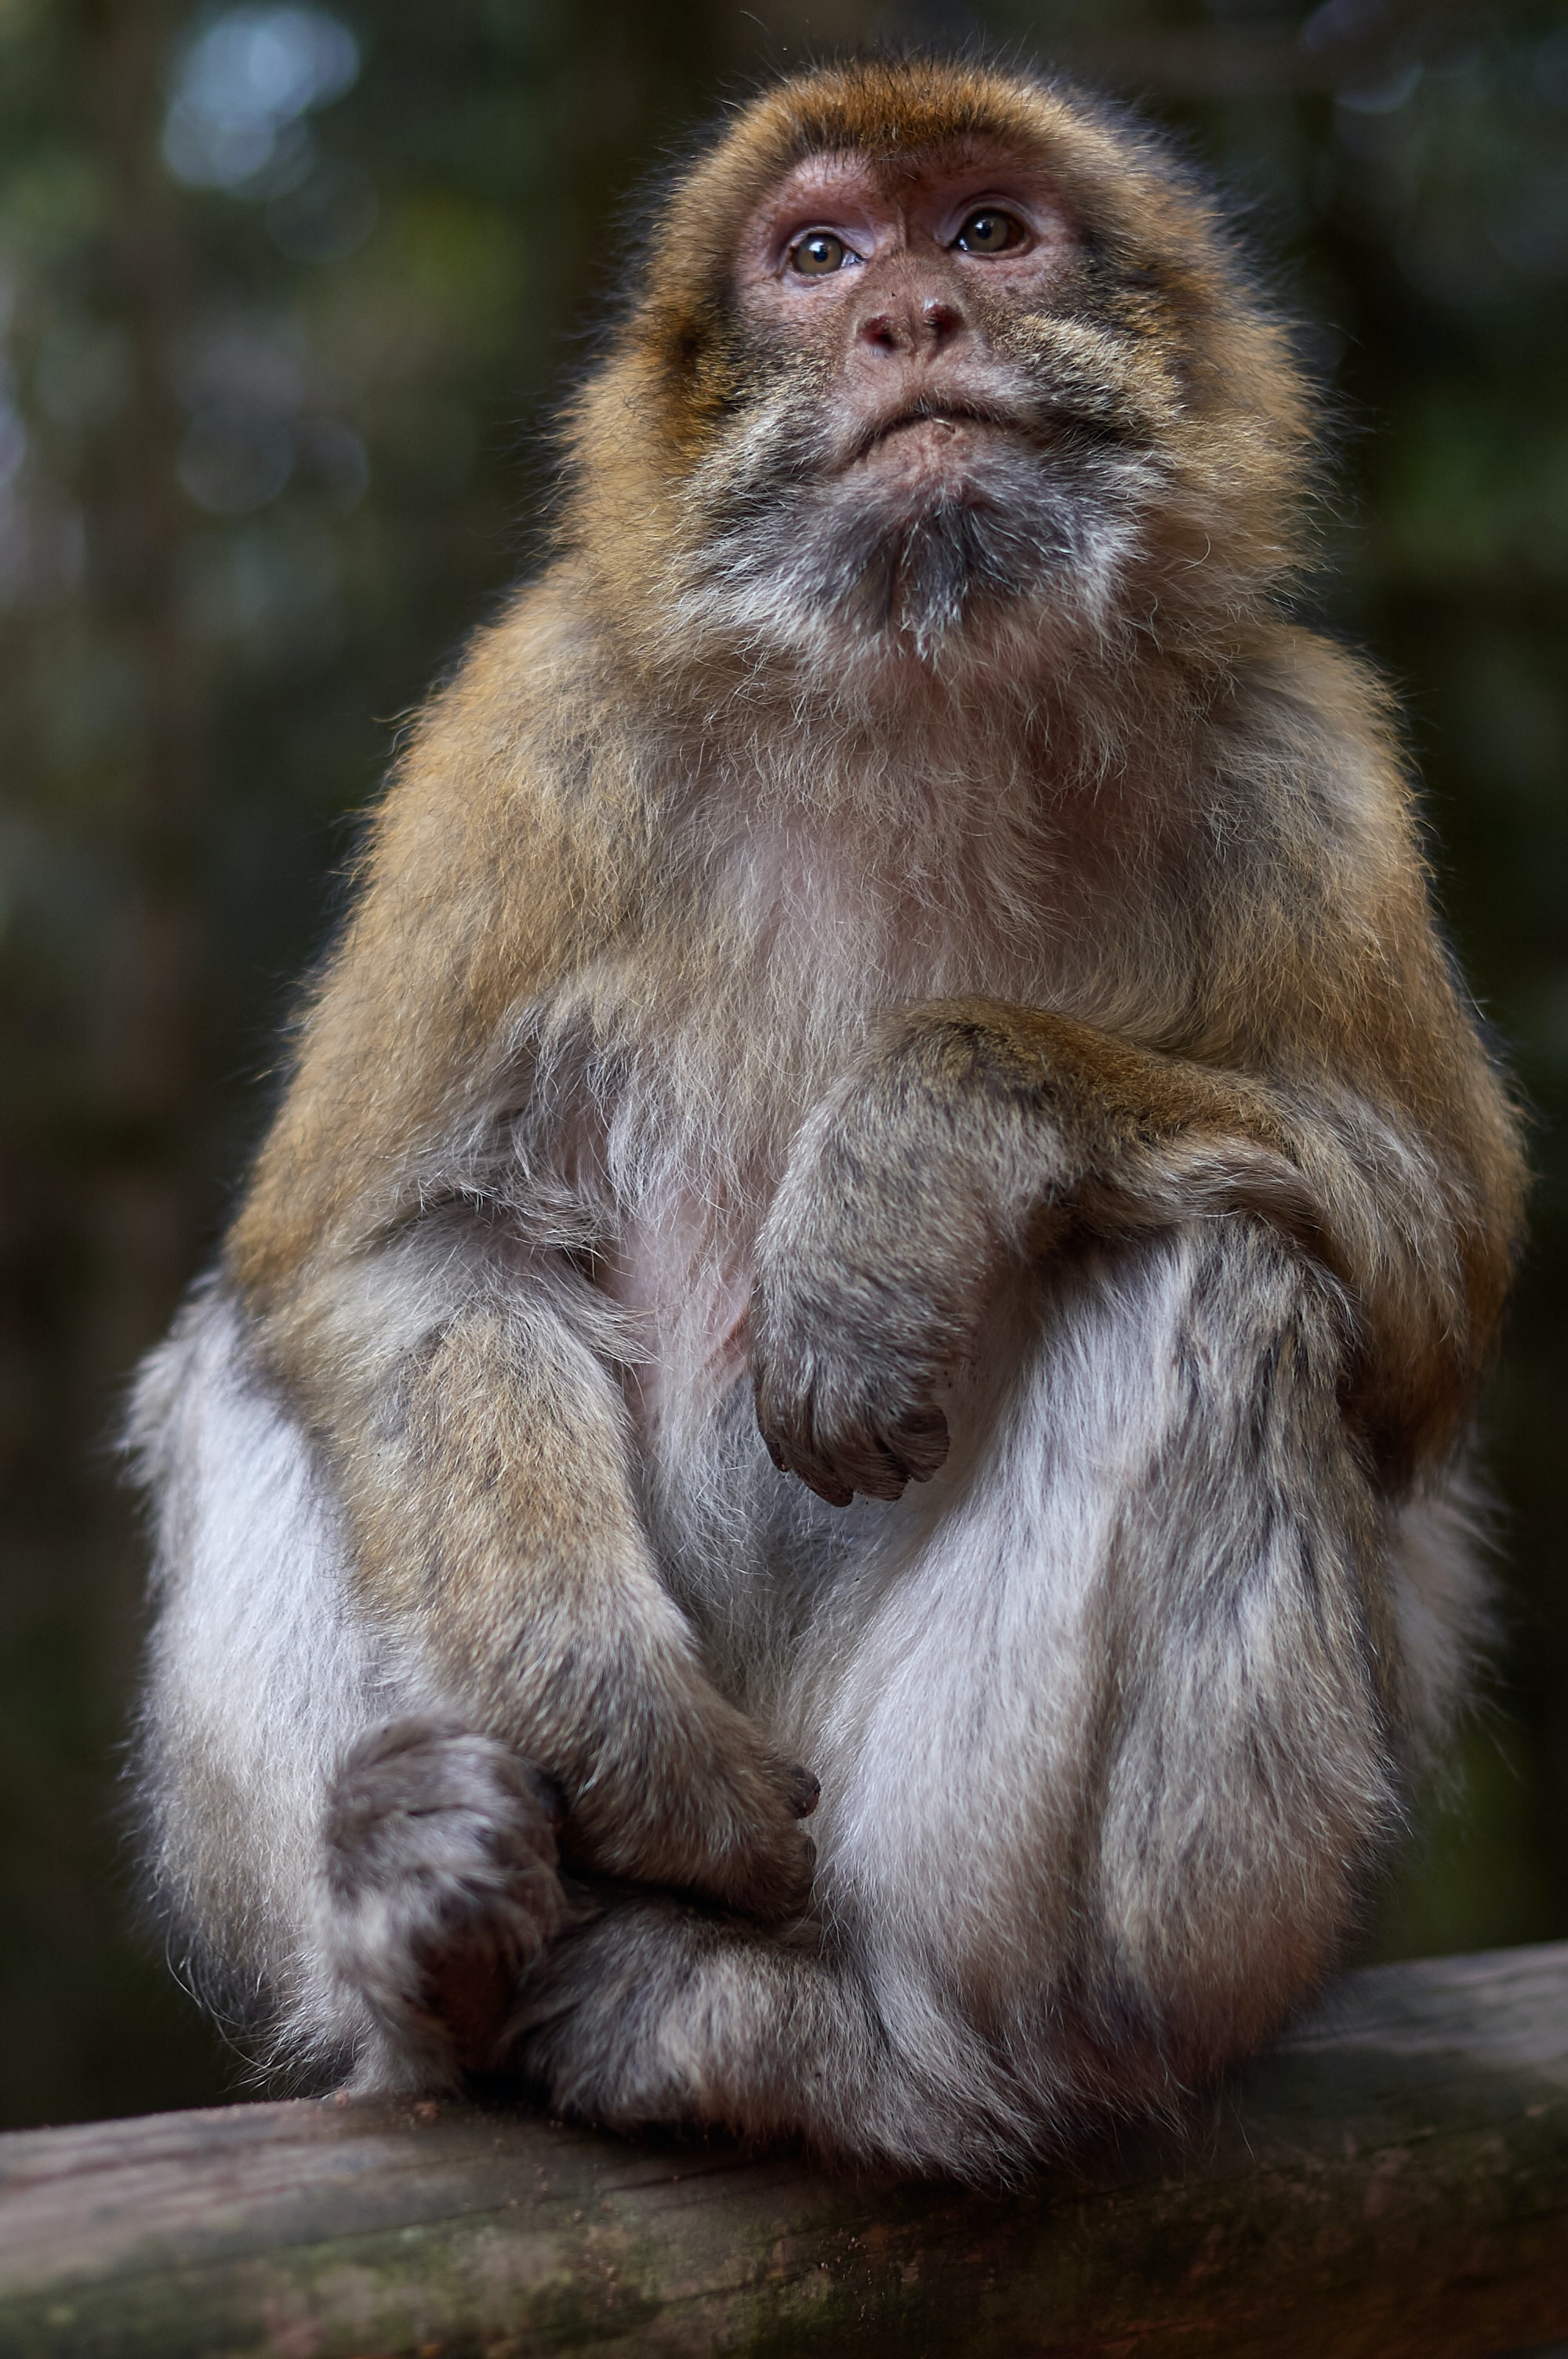 closeup photo of primate